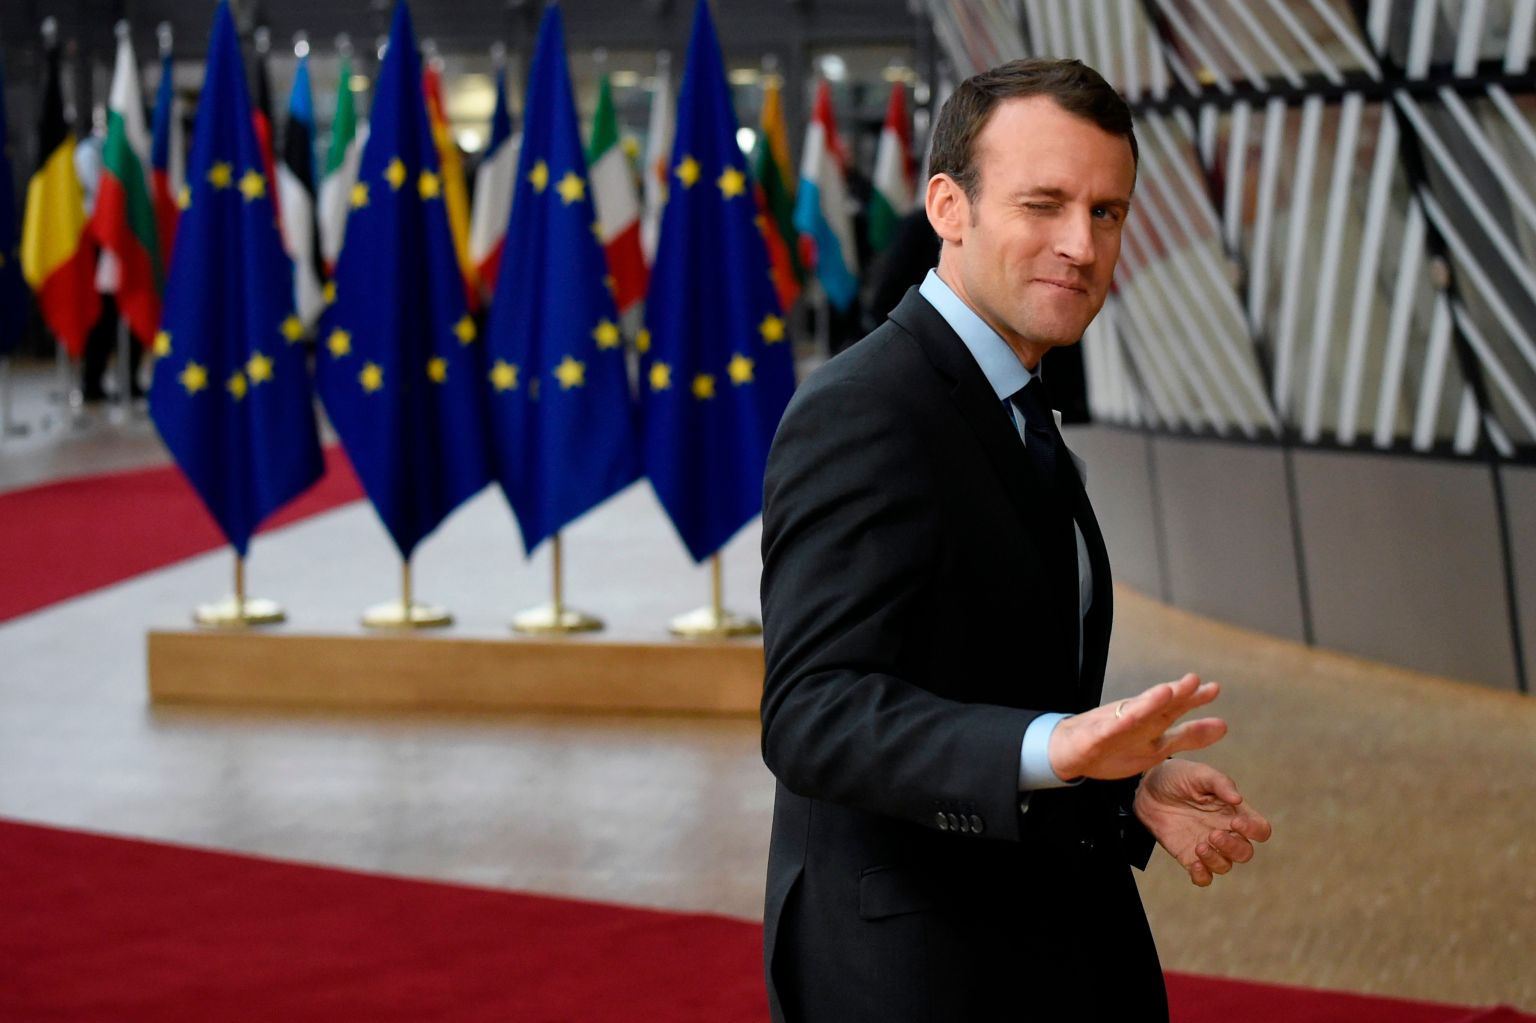 Macron S Centrism Is Coming Apart At The Seams Foreign Policy